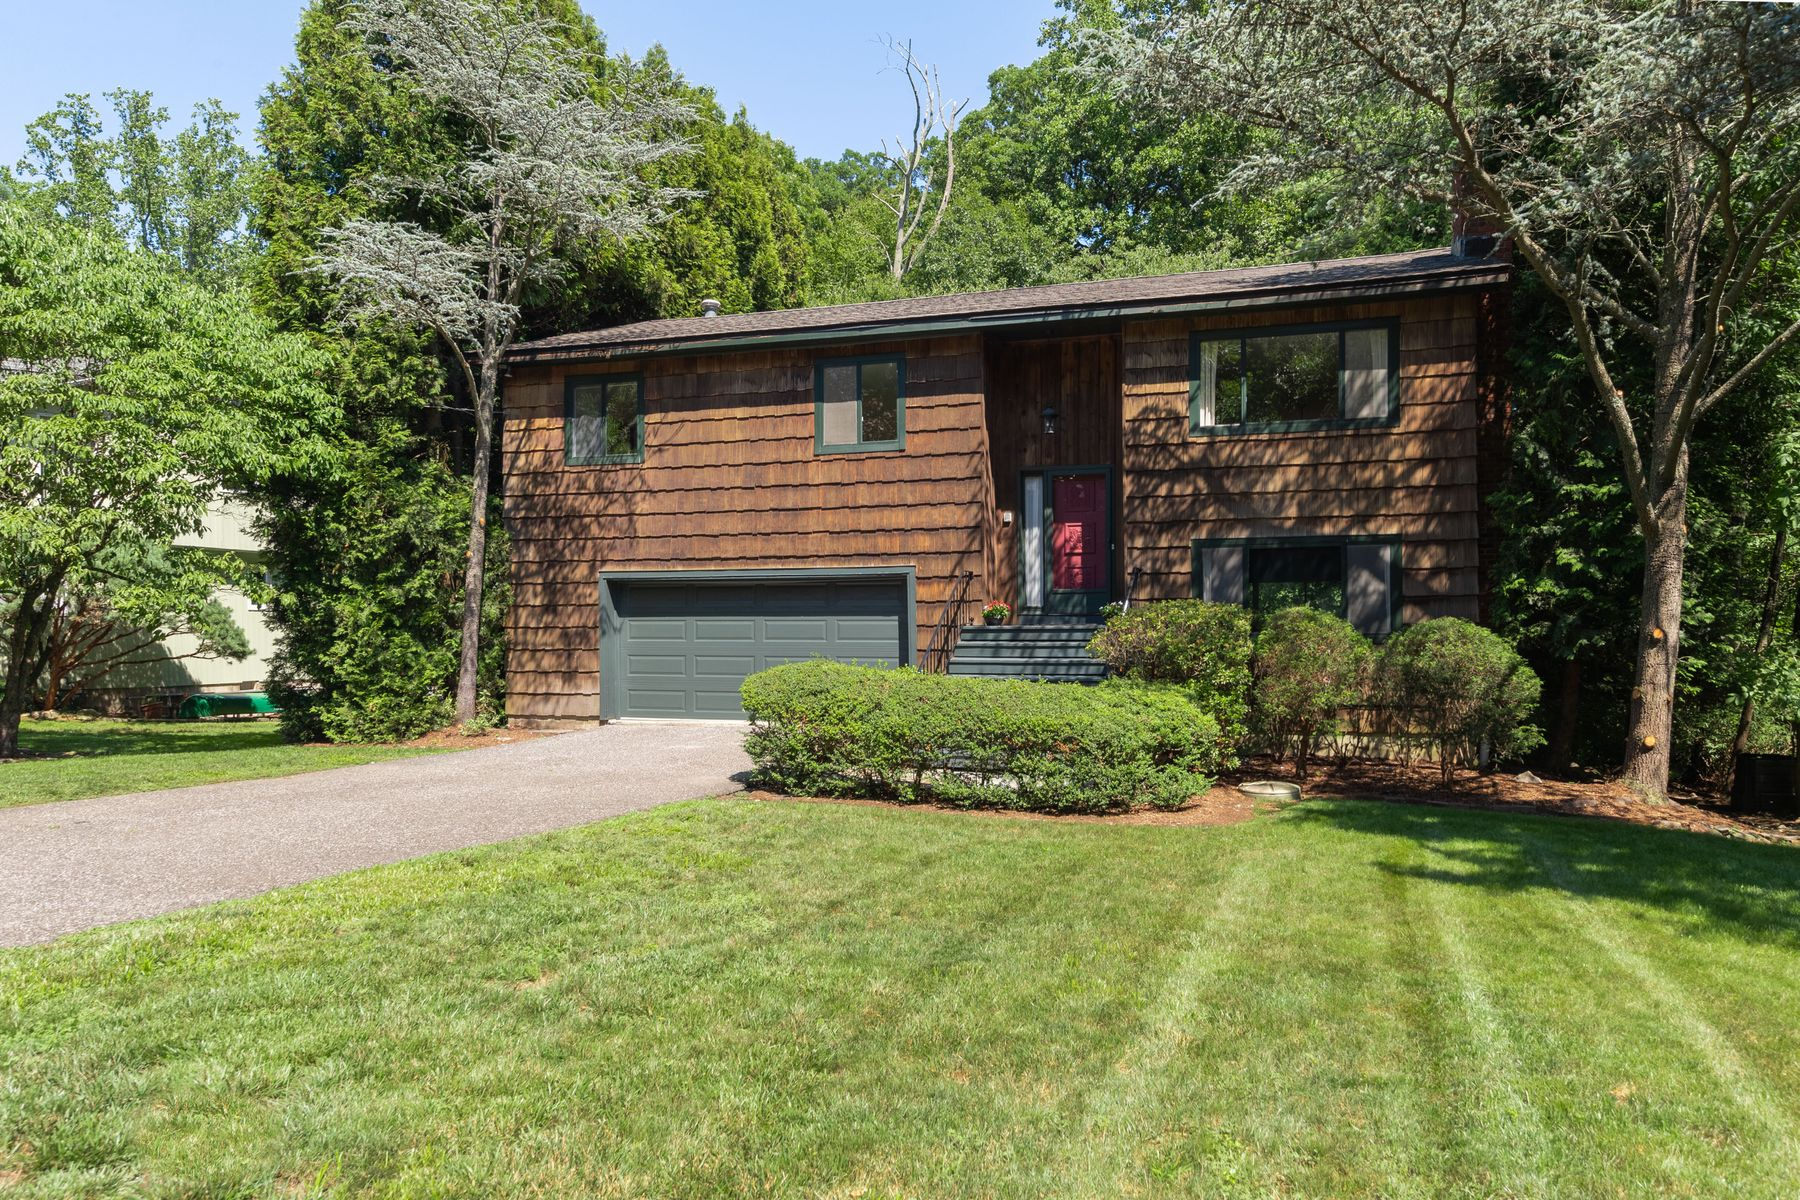 Single Family Home for Sale at 43 Sundance Drive 43 Sundance Drive Cos Cob, Connecticut 06807 United States